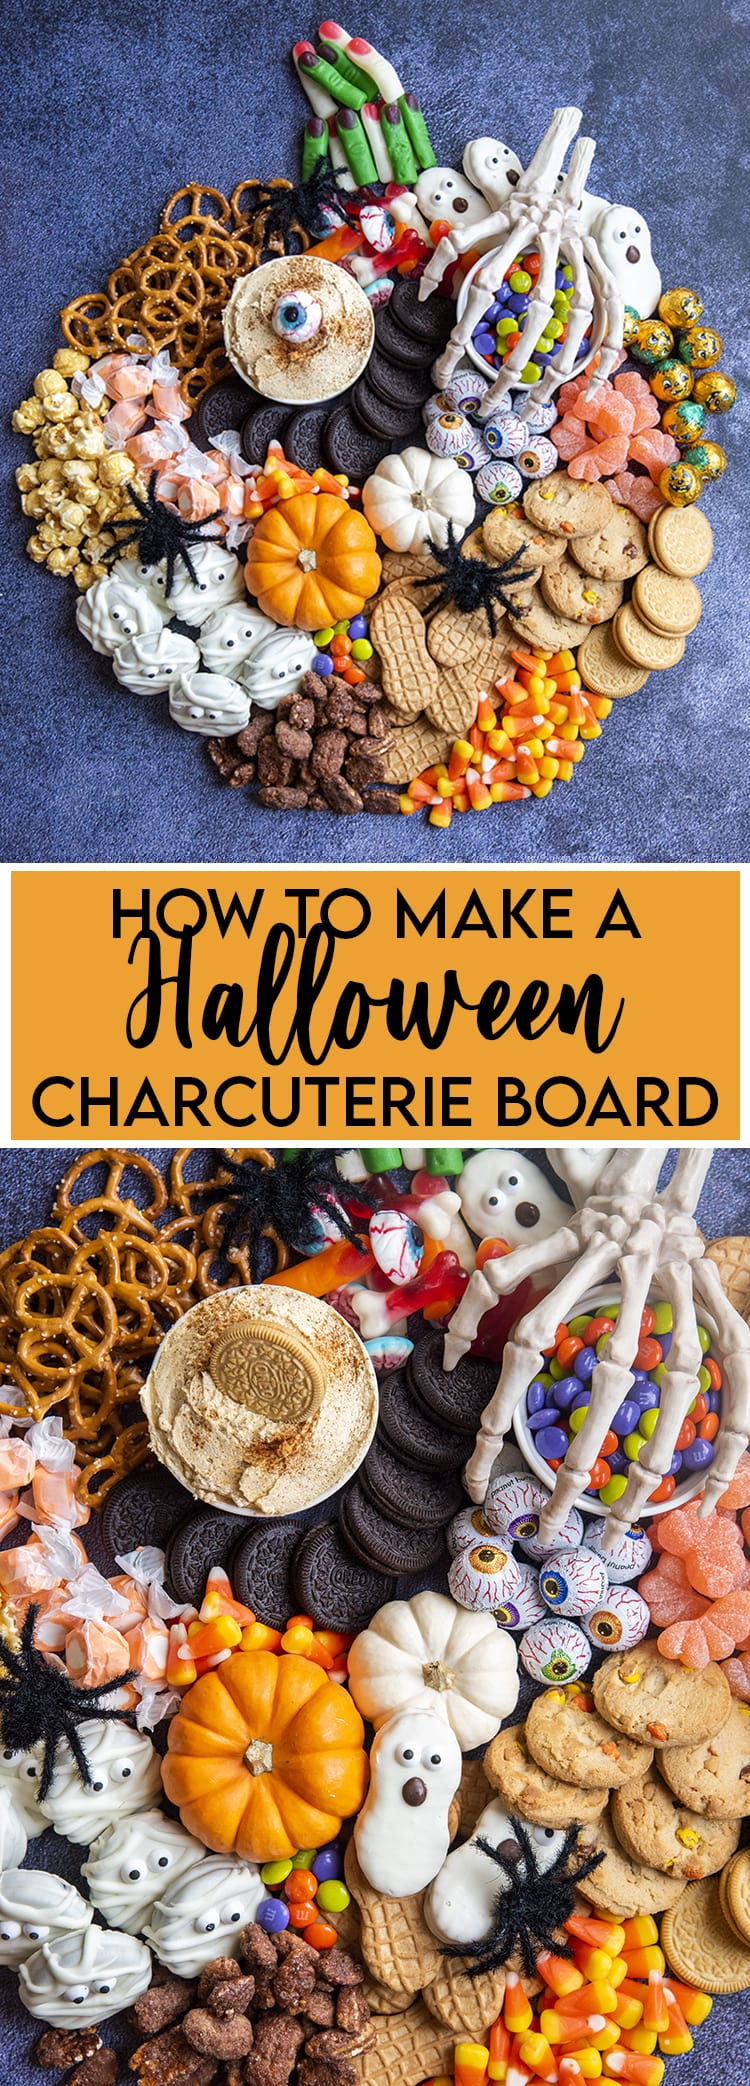 A collage of photos of how to make a halloween treat charcuterie board. The first photo is a pumpkin shaped charcuterie and the second is a close up of the snacks with nutterbutters, oreos, pretzels, candy and more.